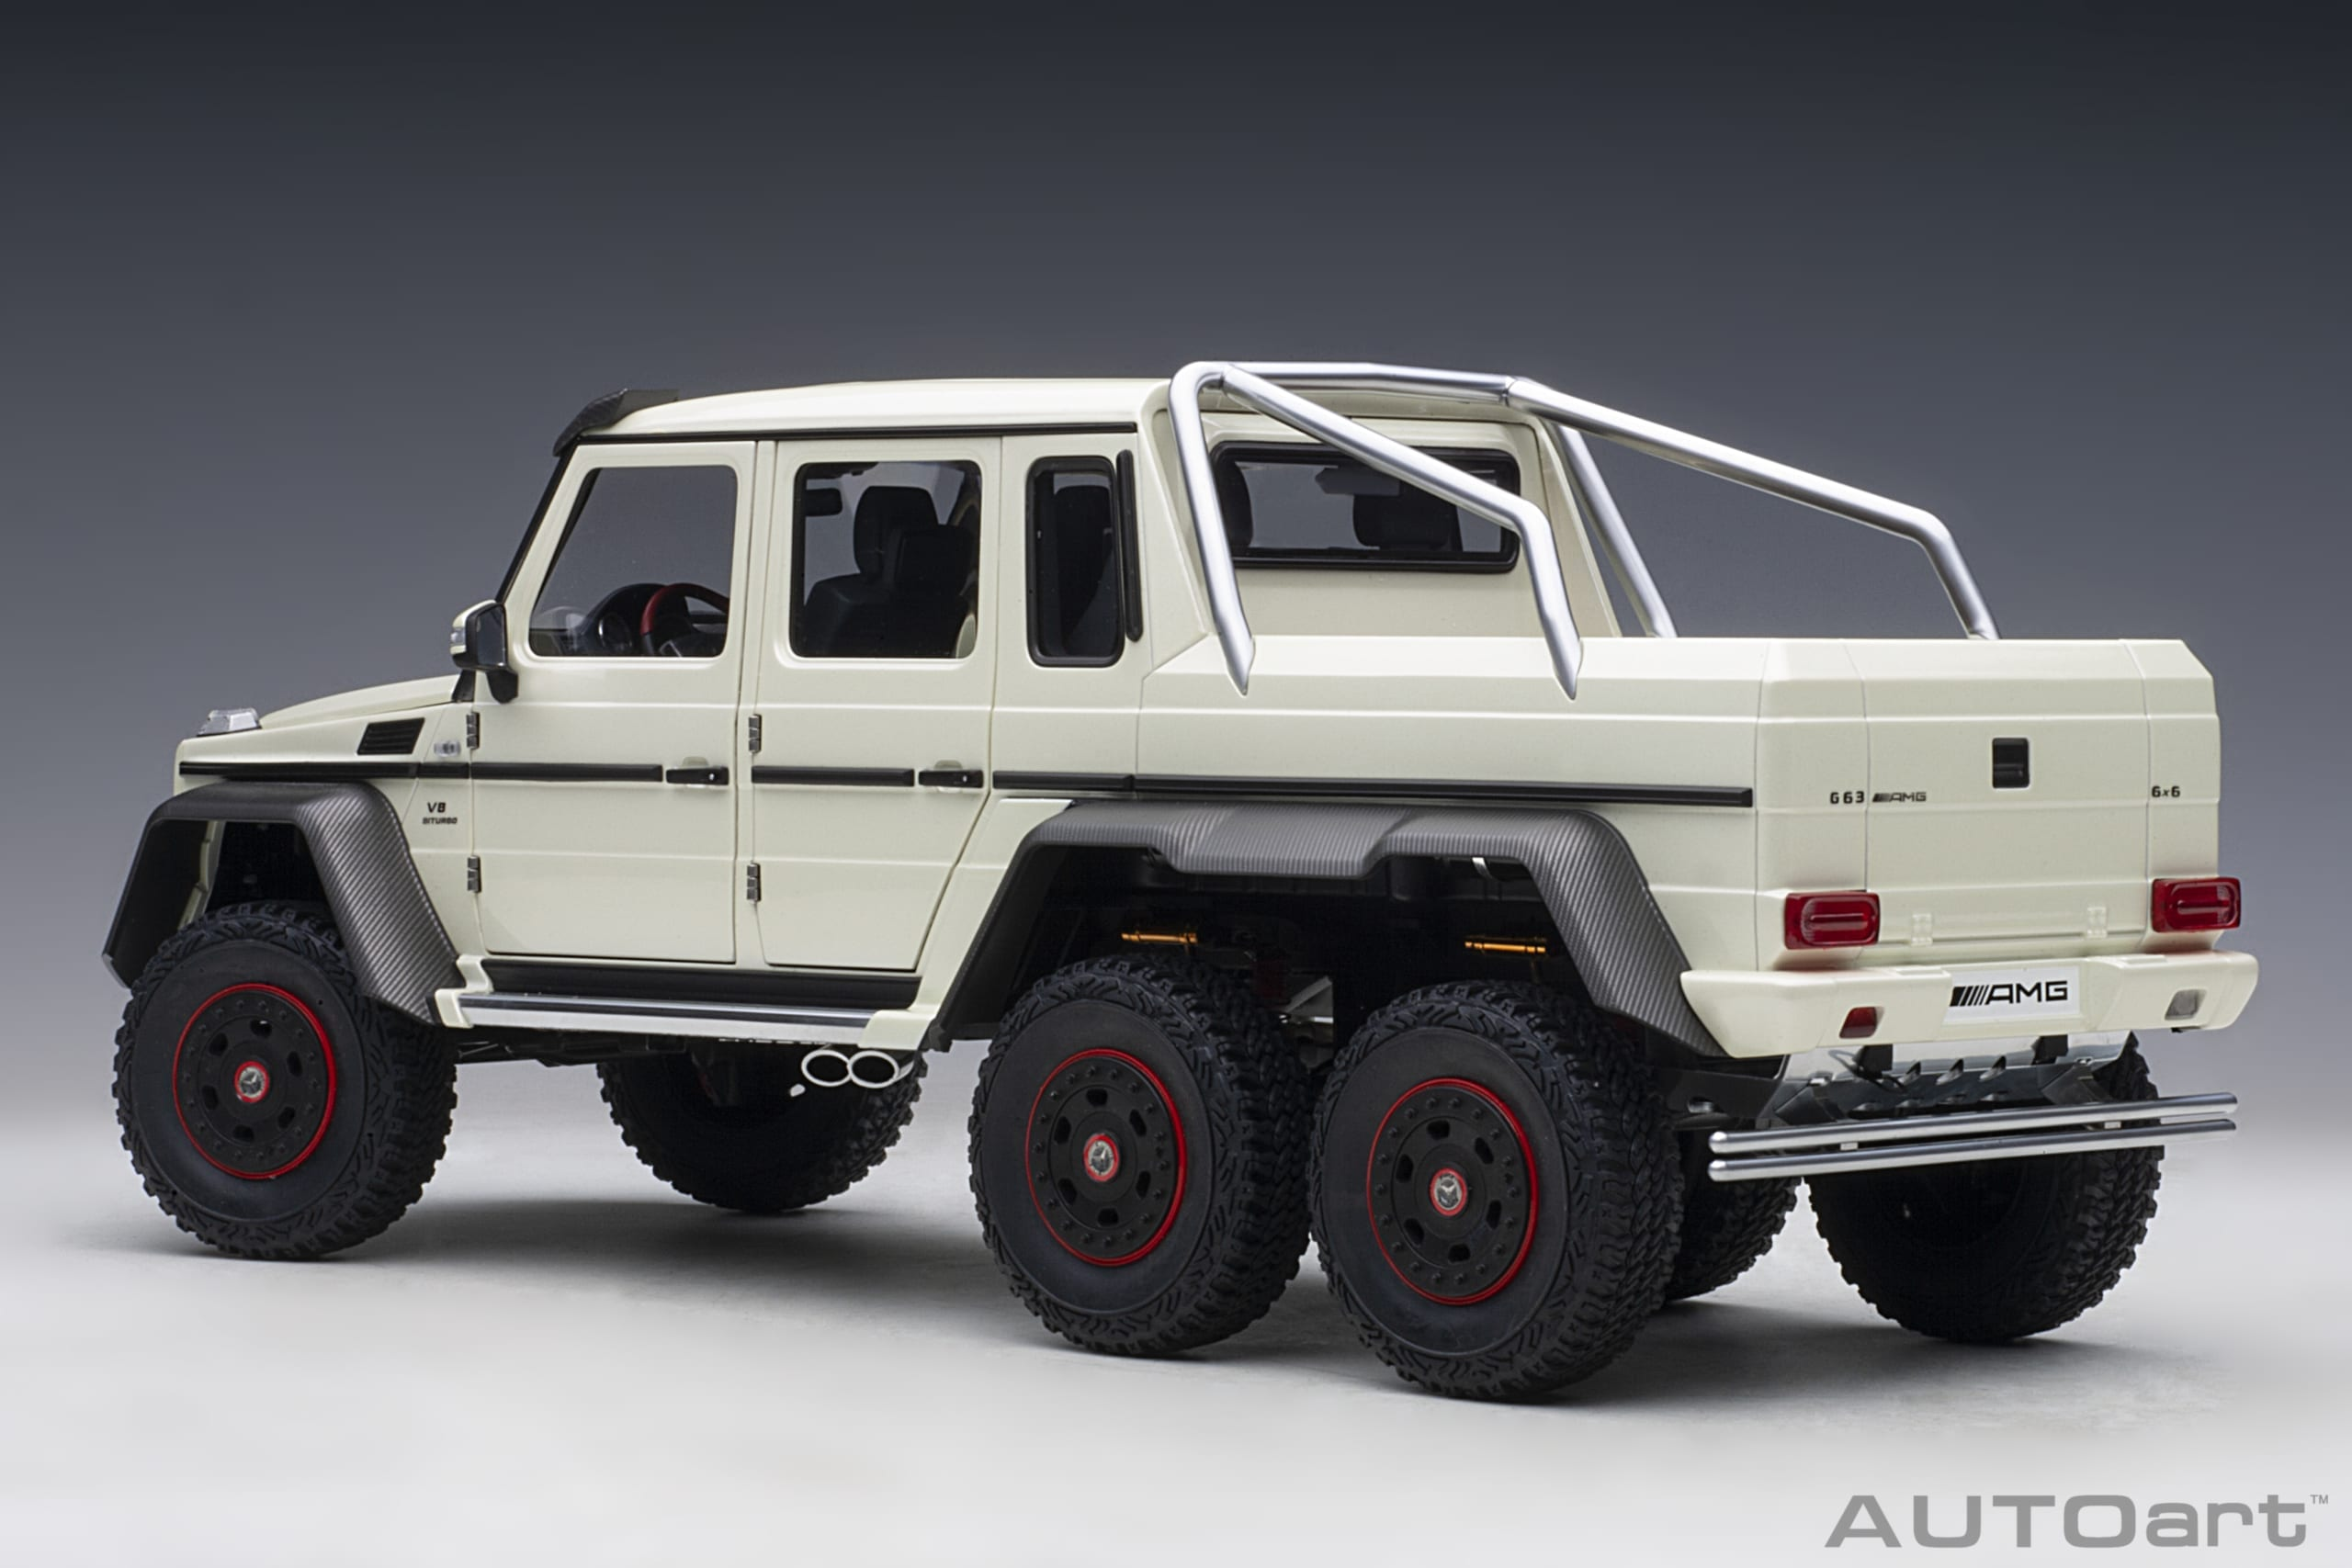 Mercedes Benz G63 Amg 6x6 Designo Diamond White Autoart